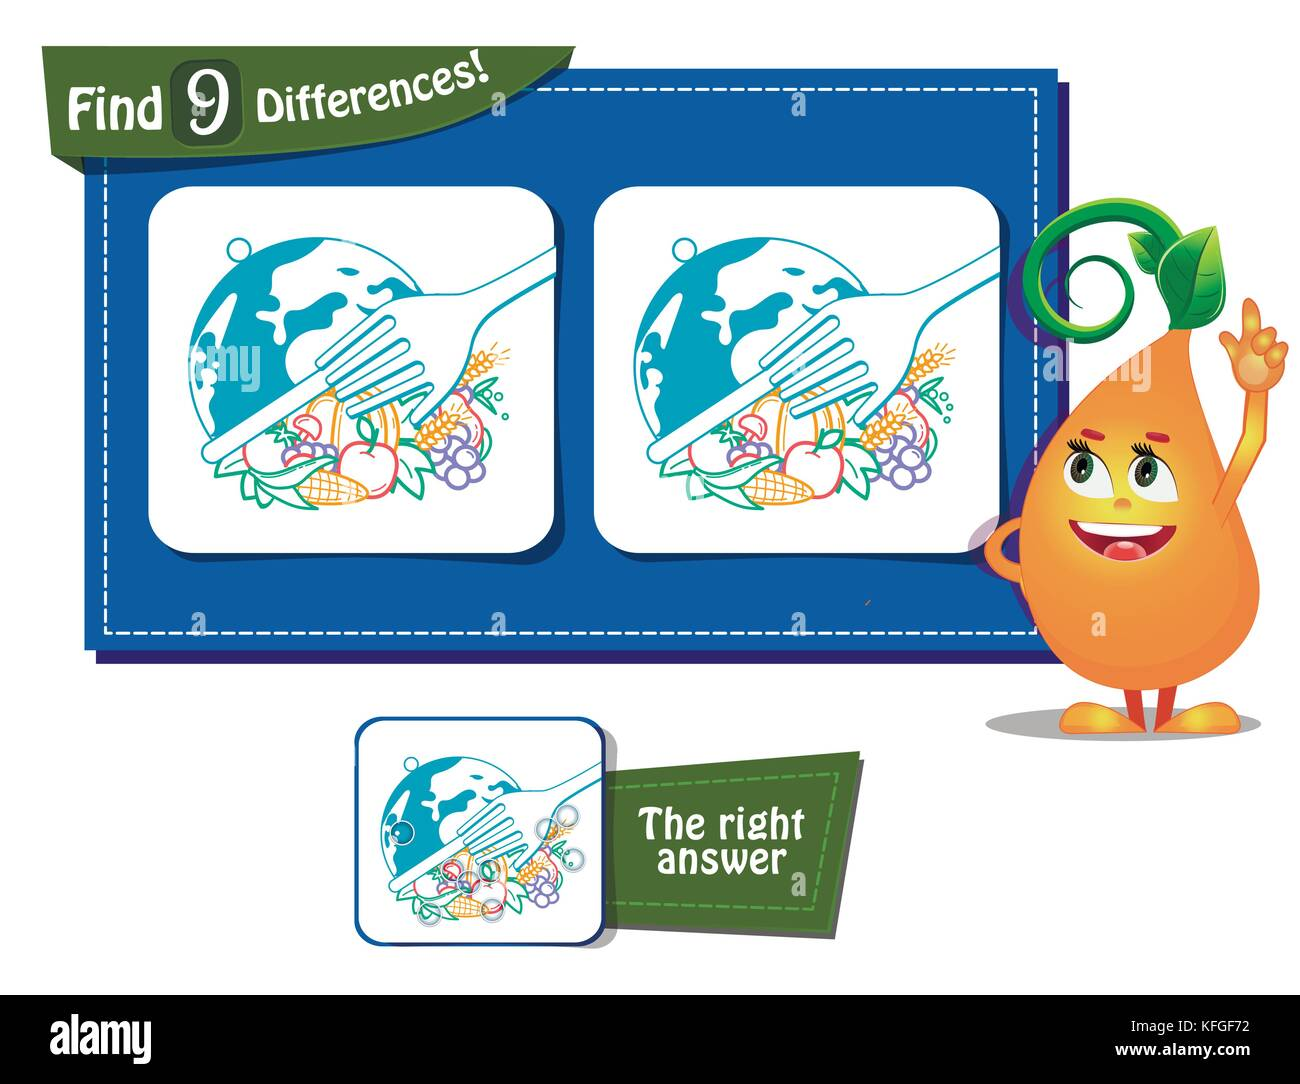 visual game for children and adults. Task to find 9 differences . World Food Day - Stock Image